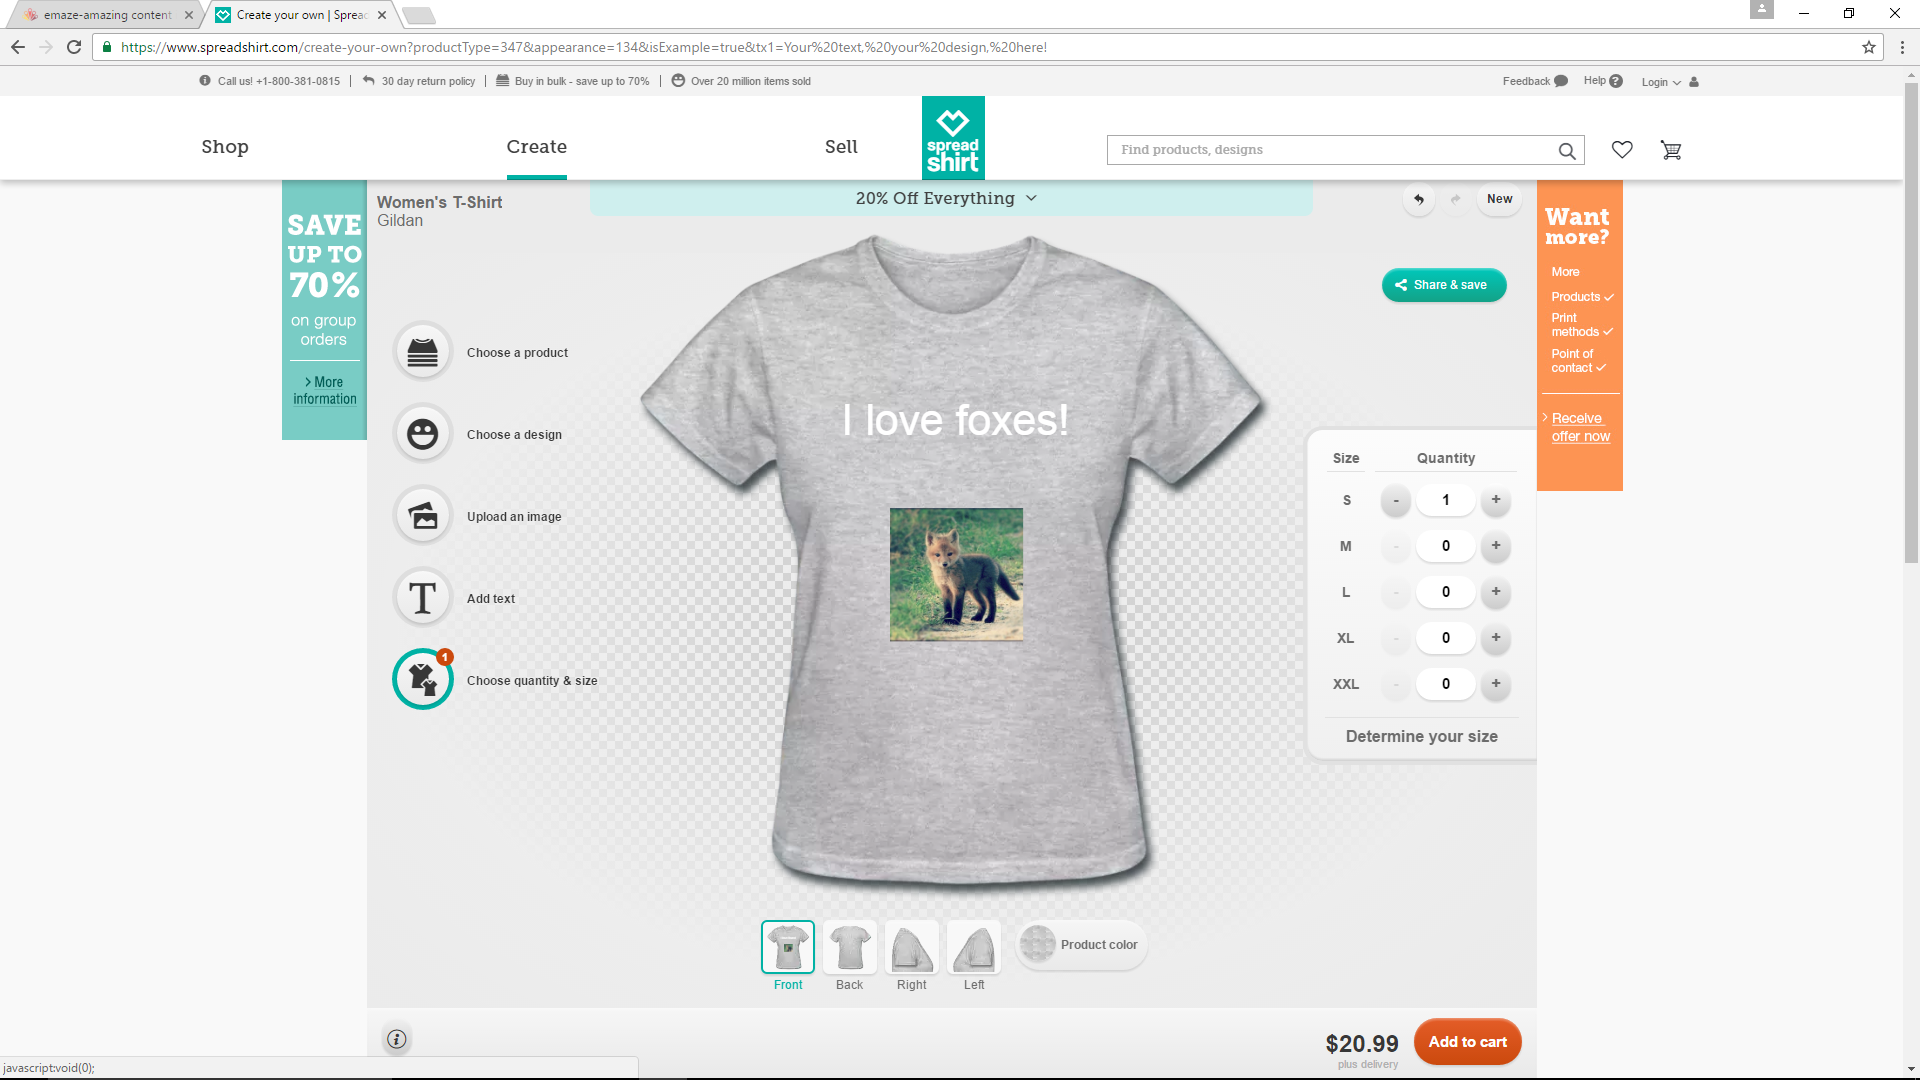 Design your own t-shirt and save it - Fast Finishers Https Www Spreadshirt Com Design Your Own T Shirt